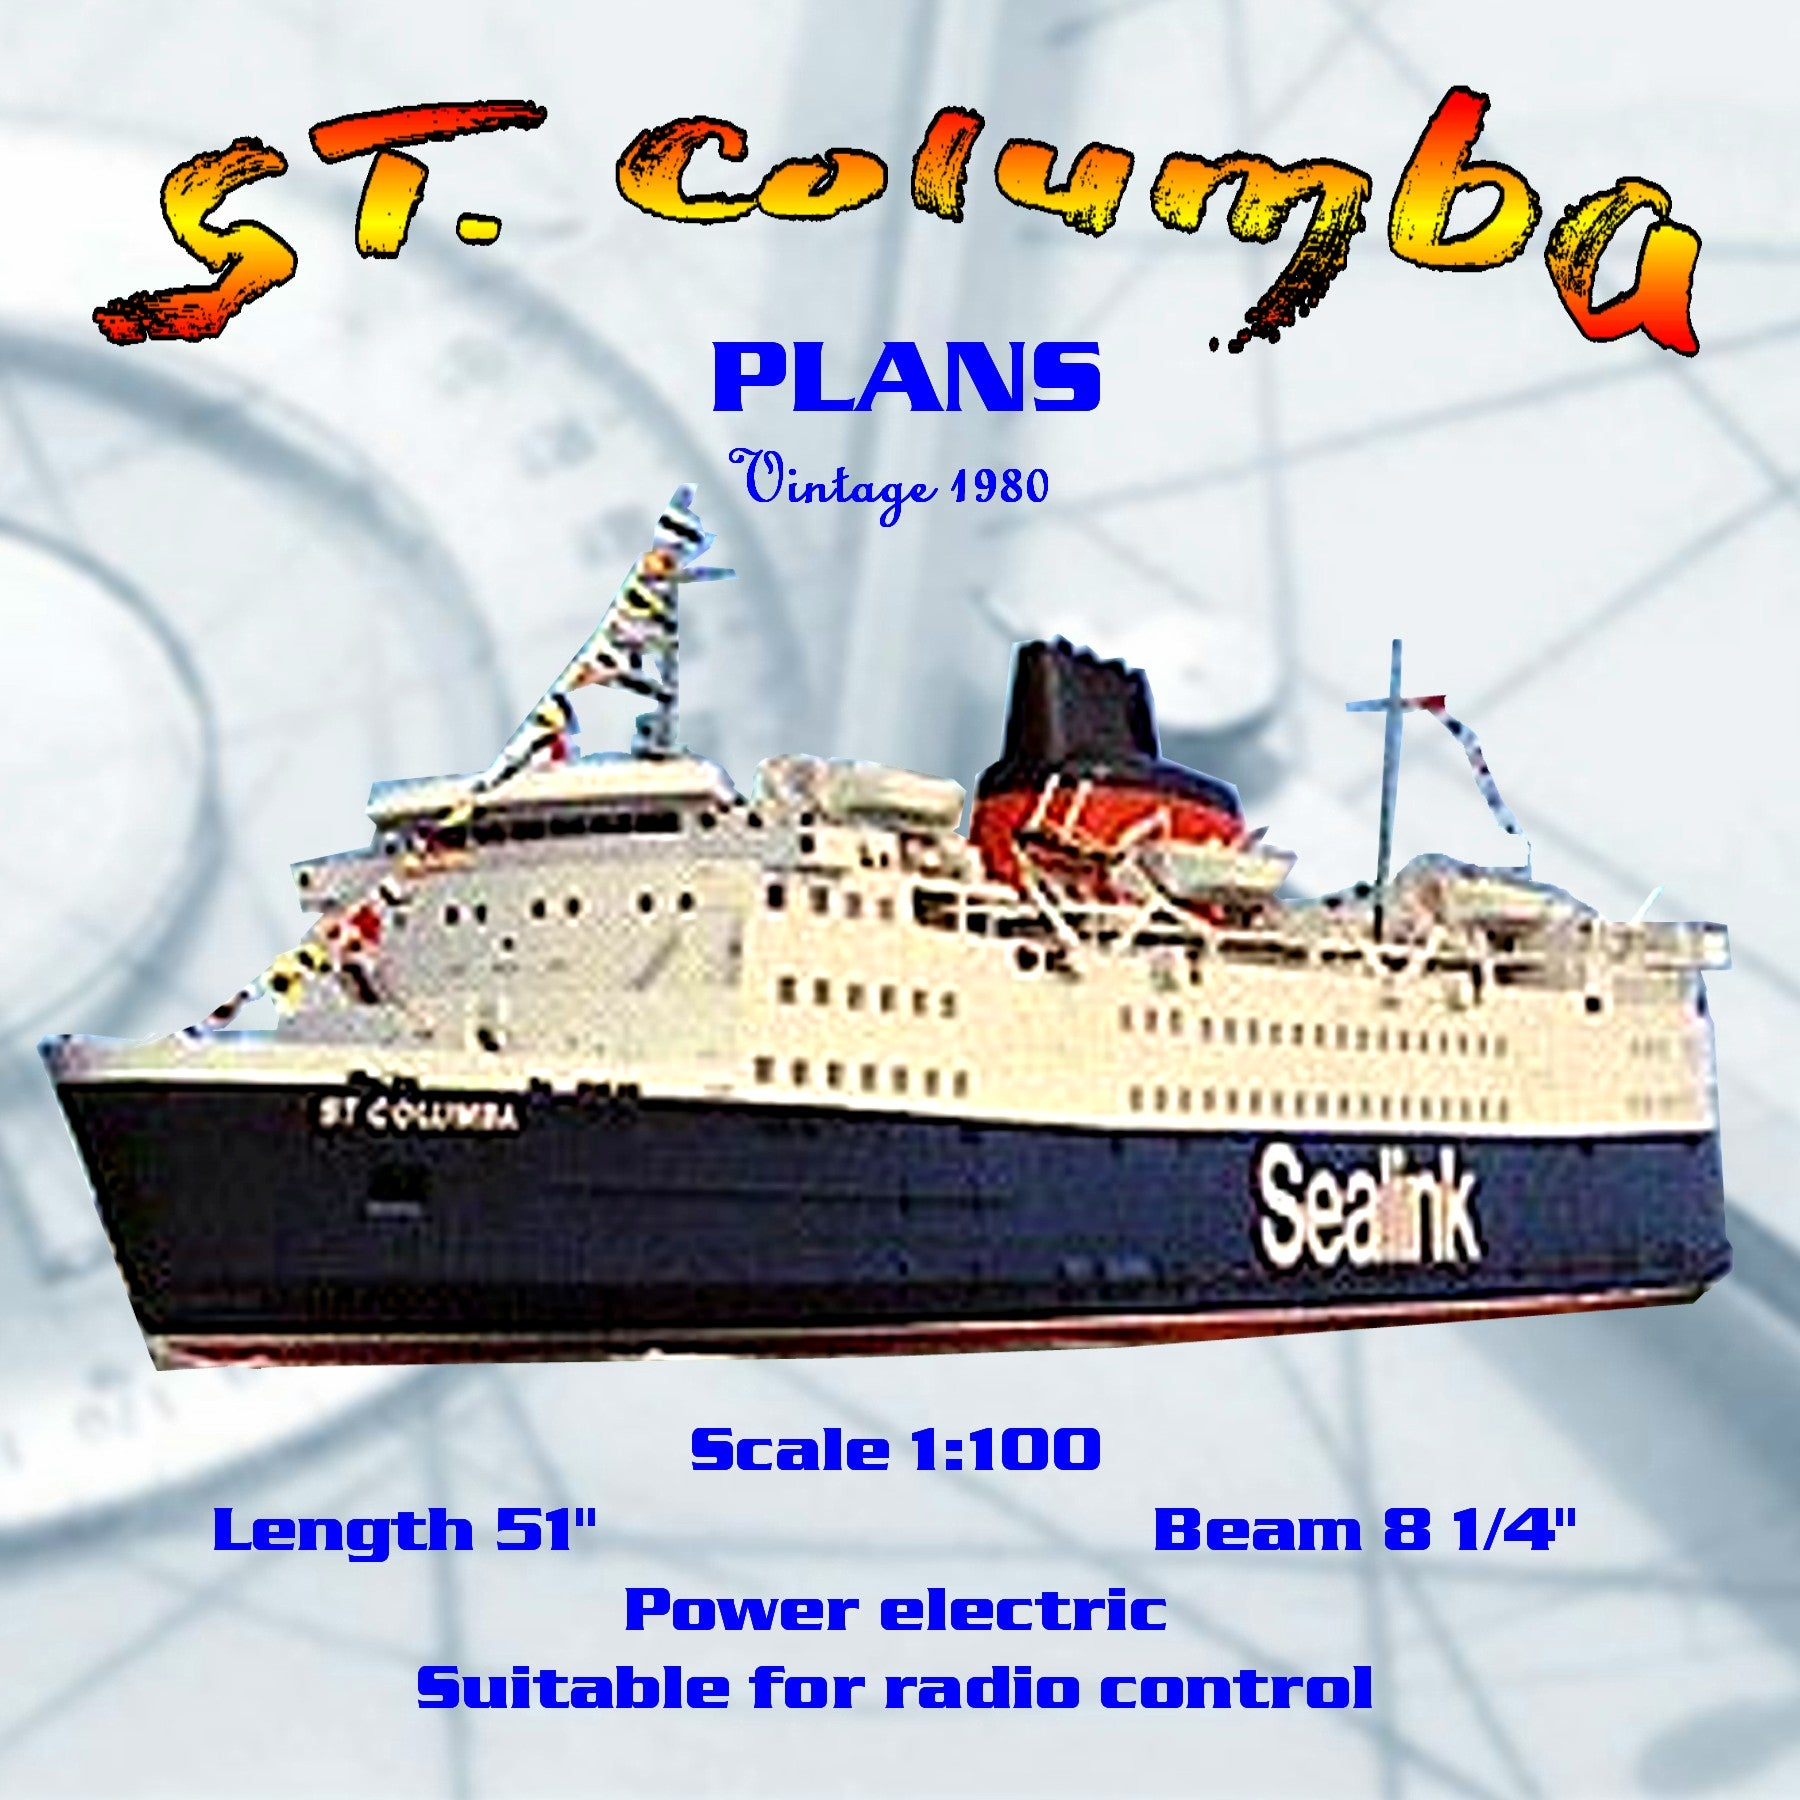 "Full Size Printed Plan Scale 1:100  ""St Columba"" is a two-class, multipurpose ship Suitable for radio control"